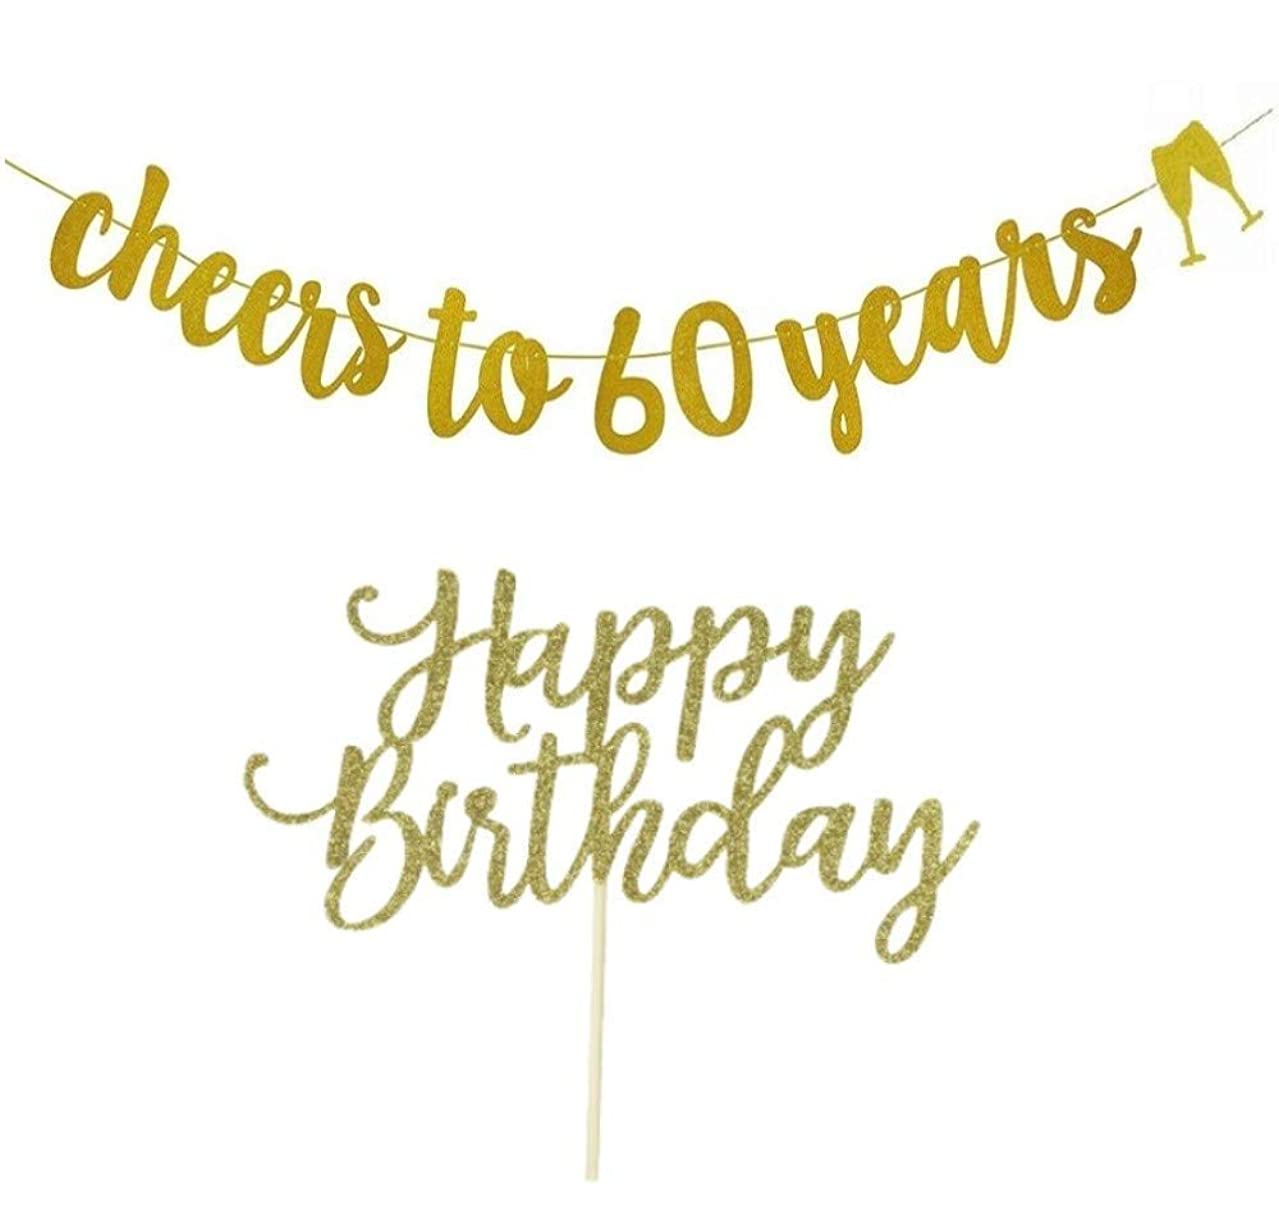 60th Birthday Banner, 60th Birthday Decorations Gold Glitter, Cheers to 60 Years, with Happy Birthday Cake Topper